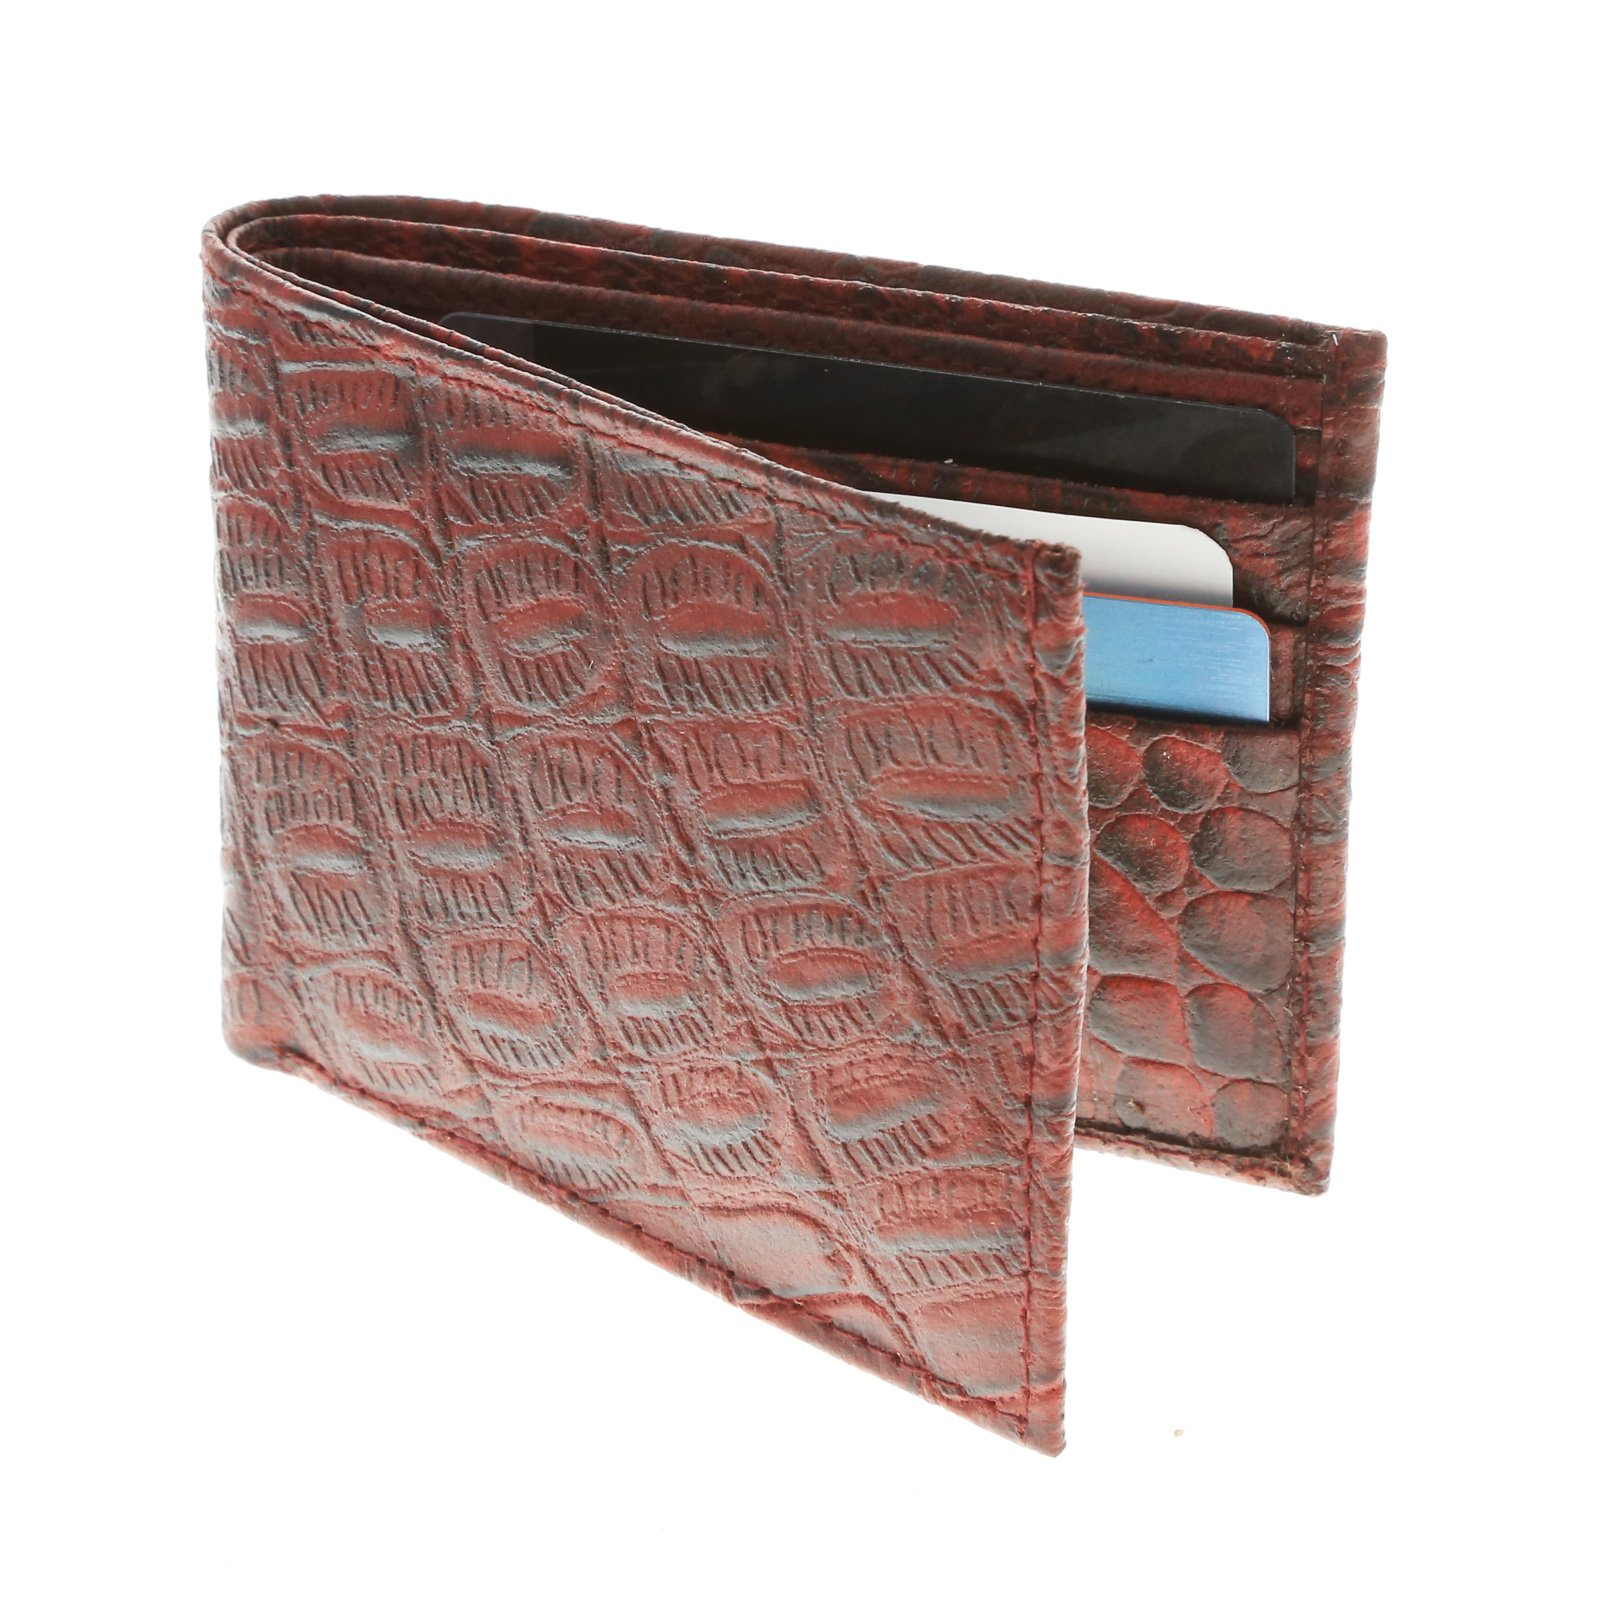 Brandon Dallas Spacious Bi-fold Wallet Hand Crafted with Genuine Leather